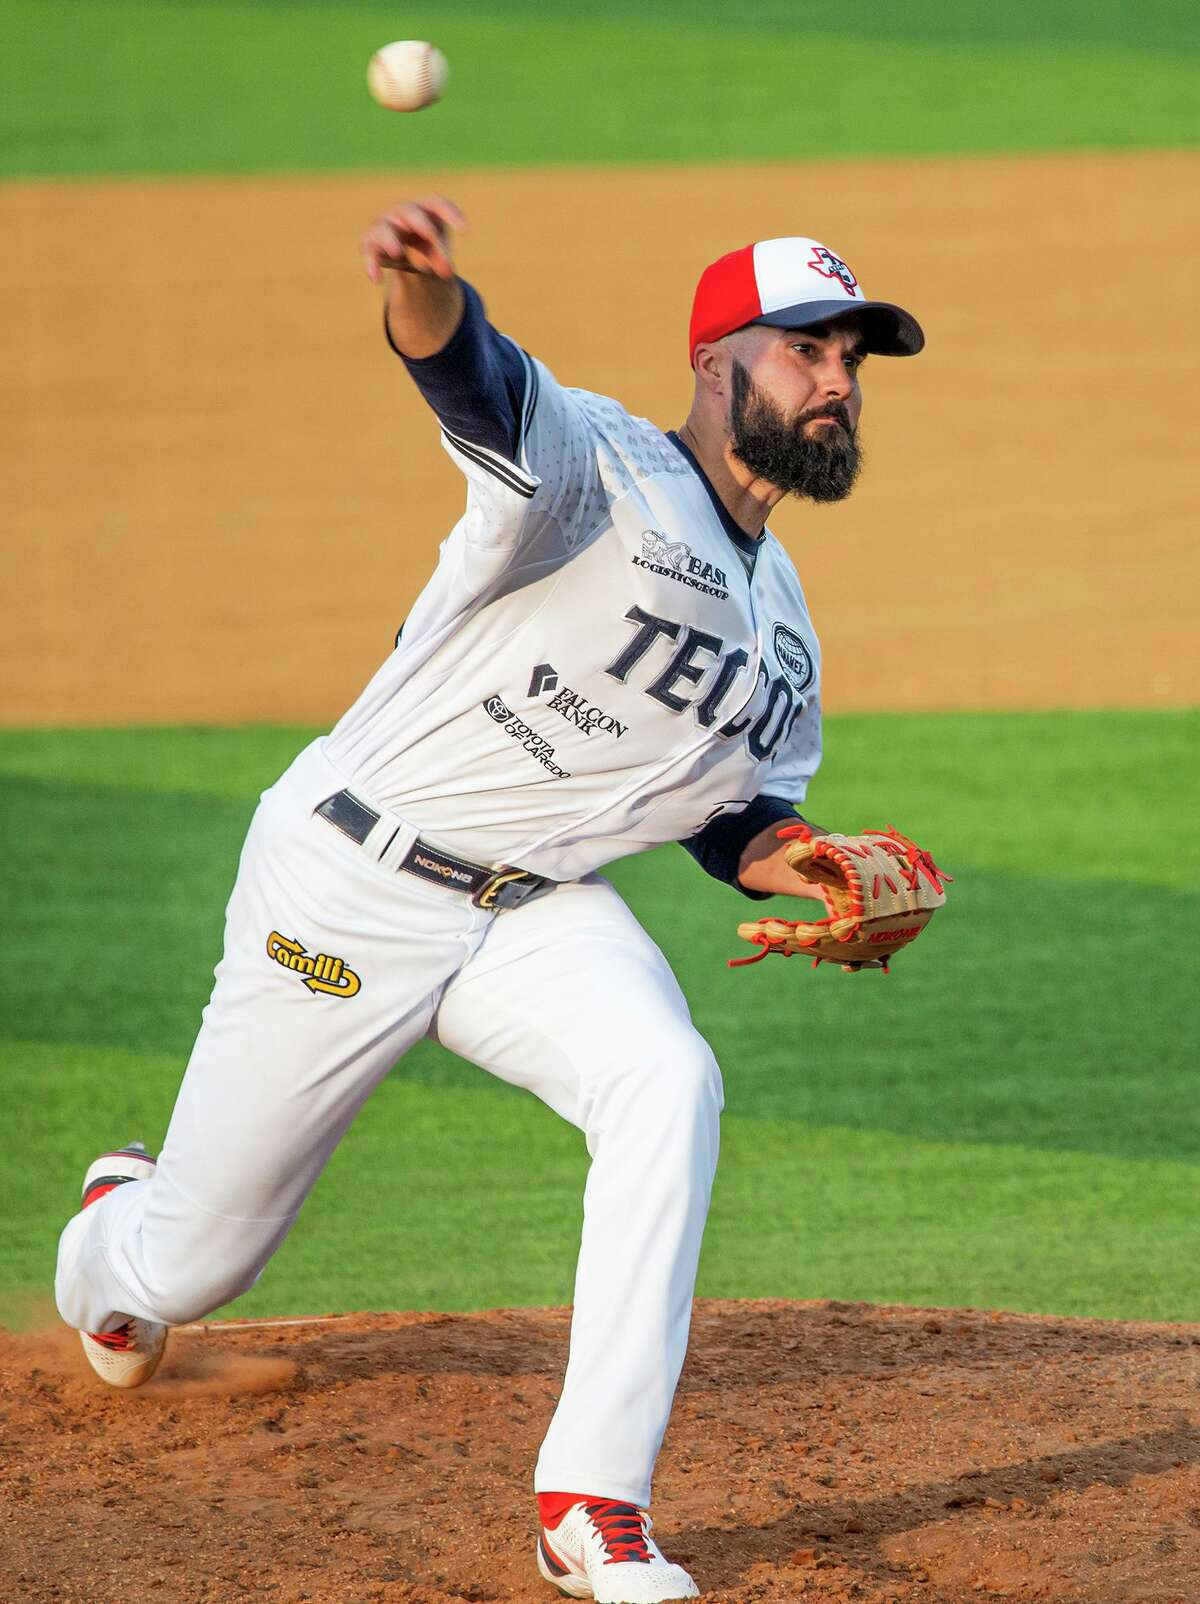 Josh Roeder is the only current starting pitcher who opened the year in the rotation for the Tecolotes Dos Laredos.